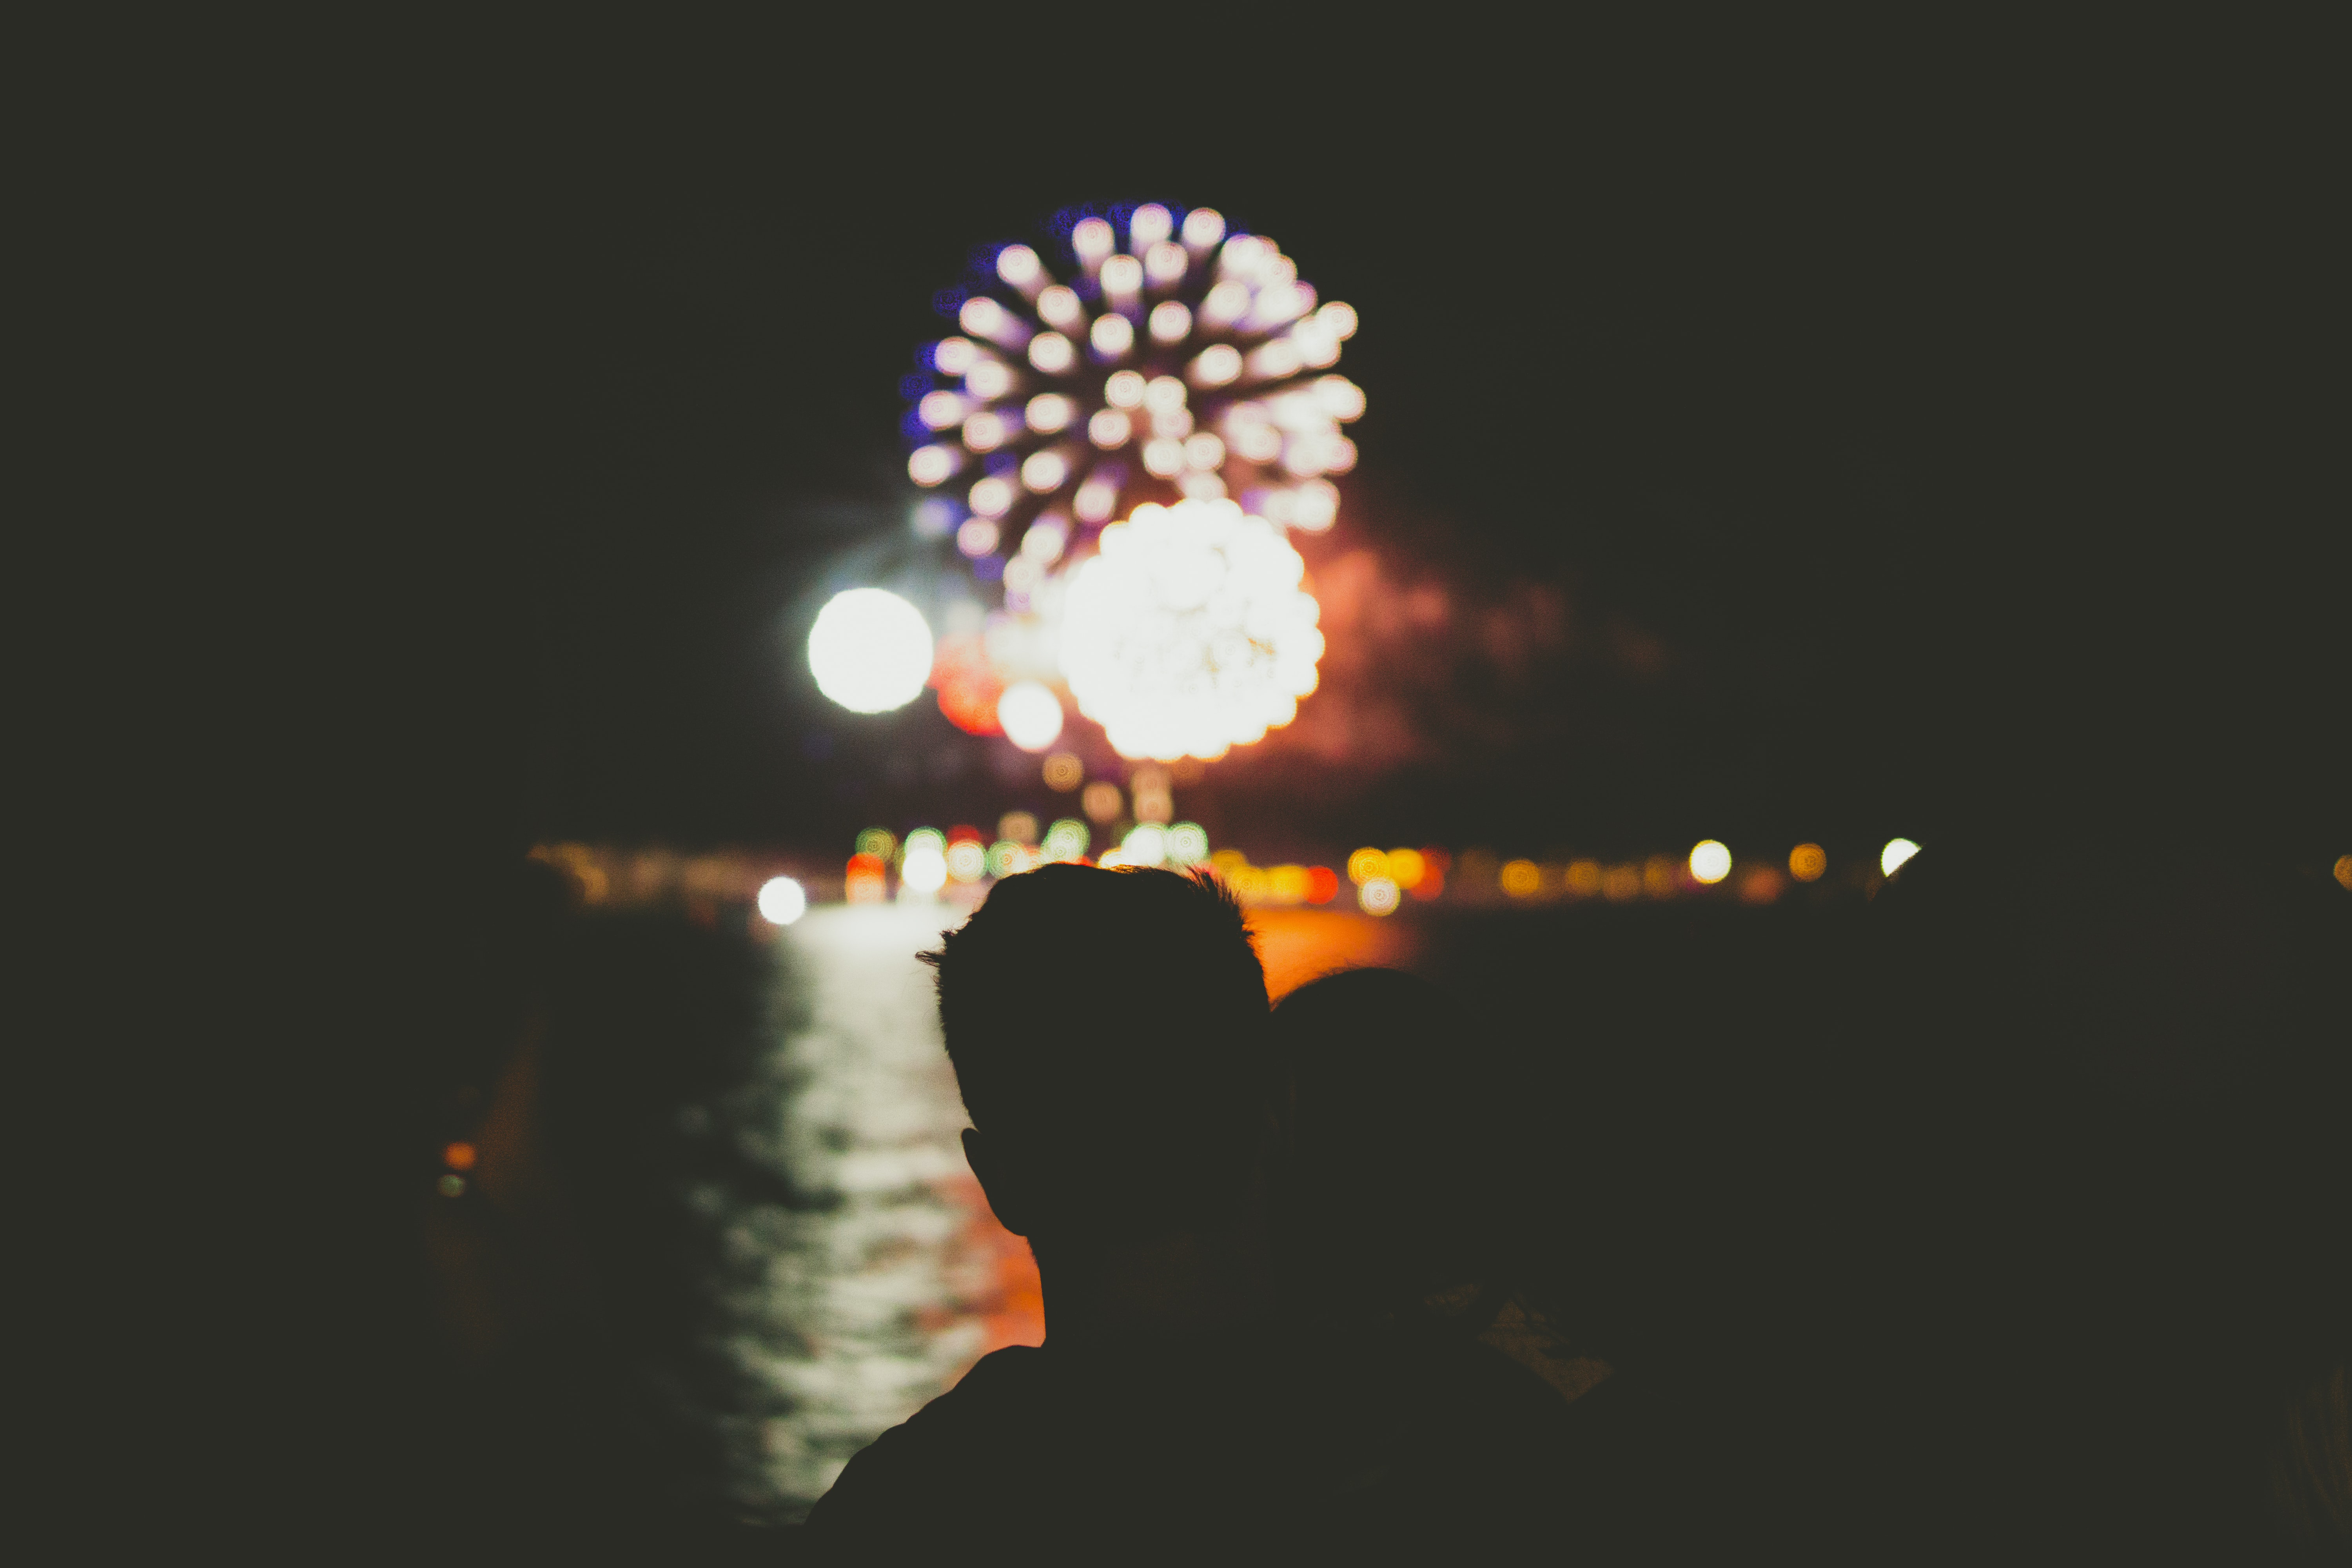 silhouette of person in front of fireworks